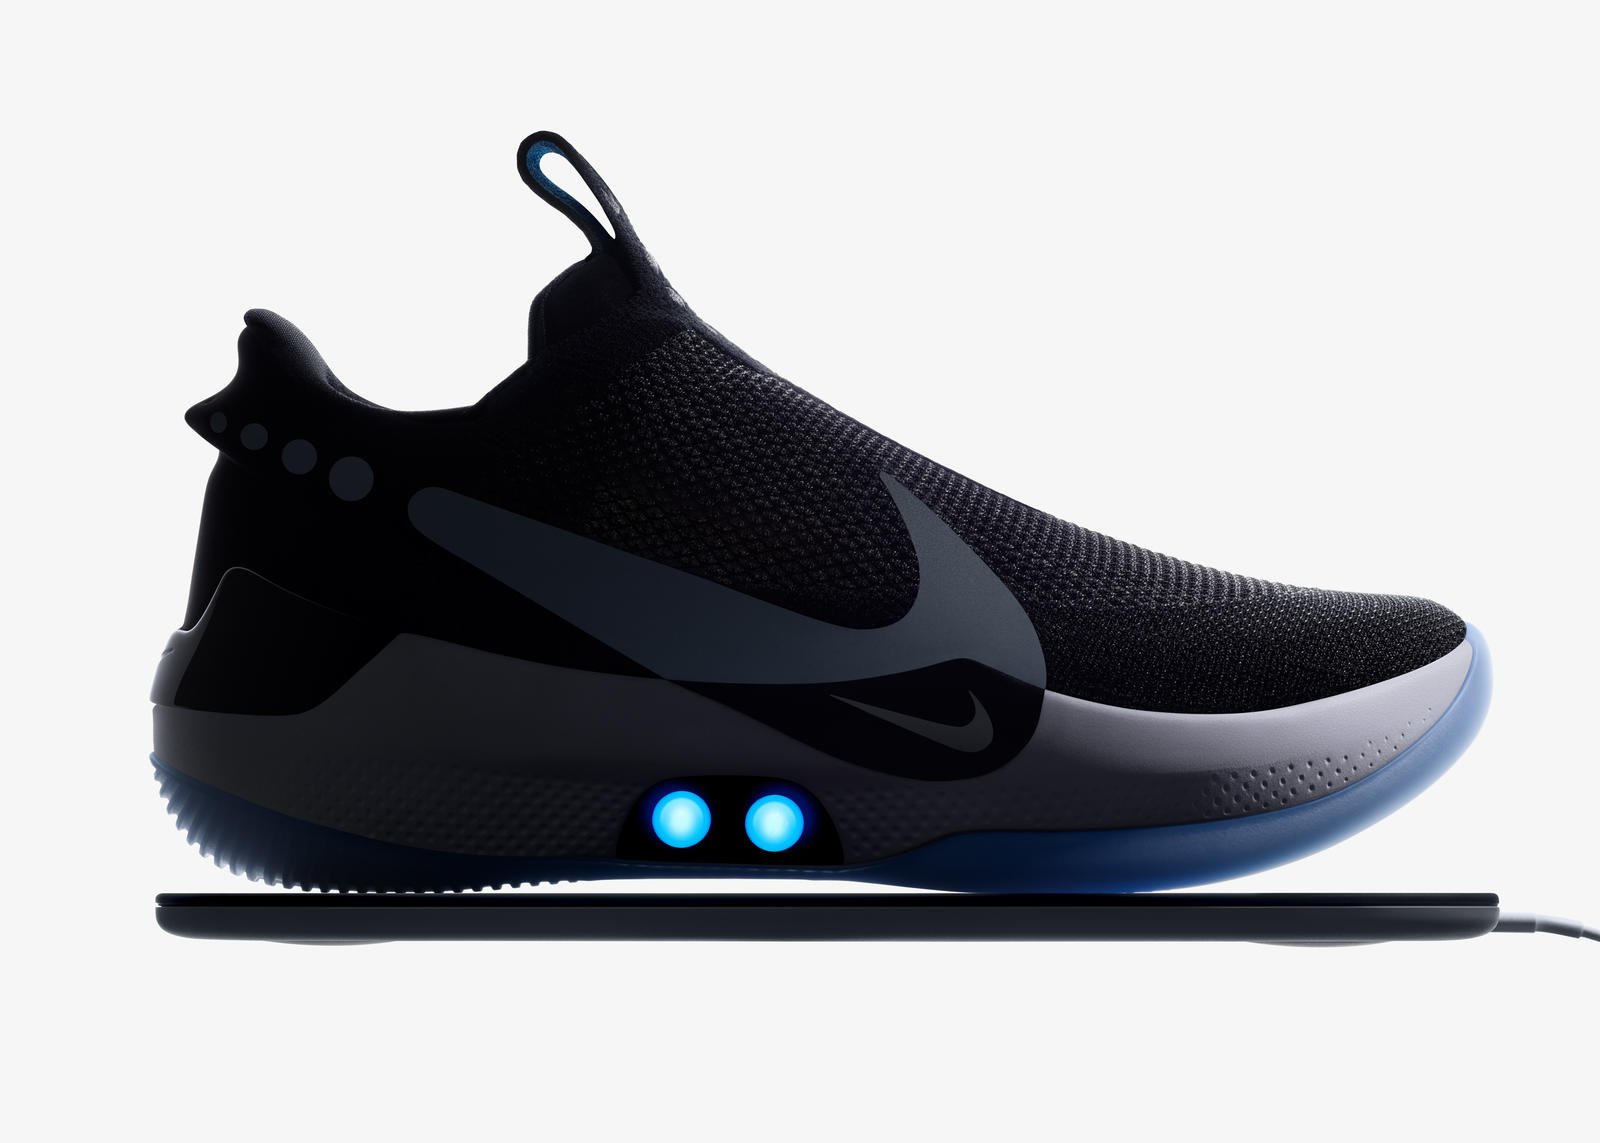 Nike's Expensive Self-Lacing Shoes Adapt BB sneakers